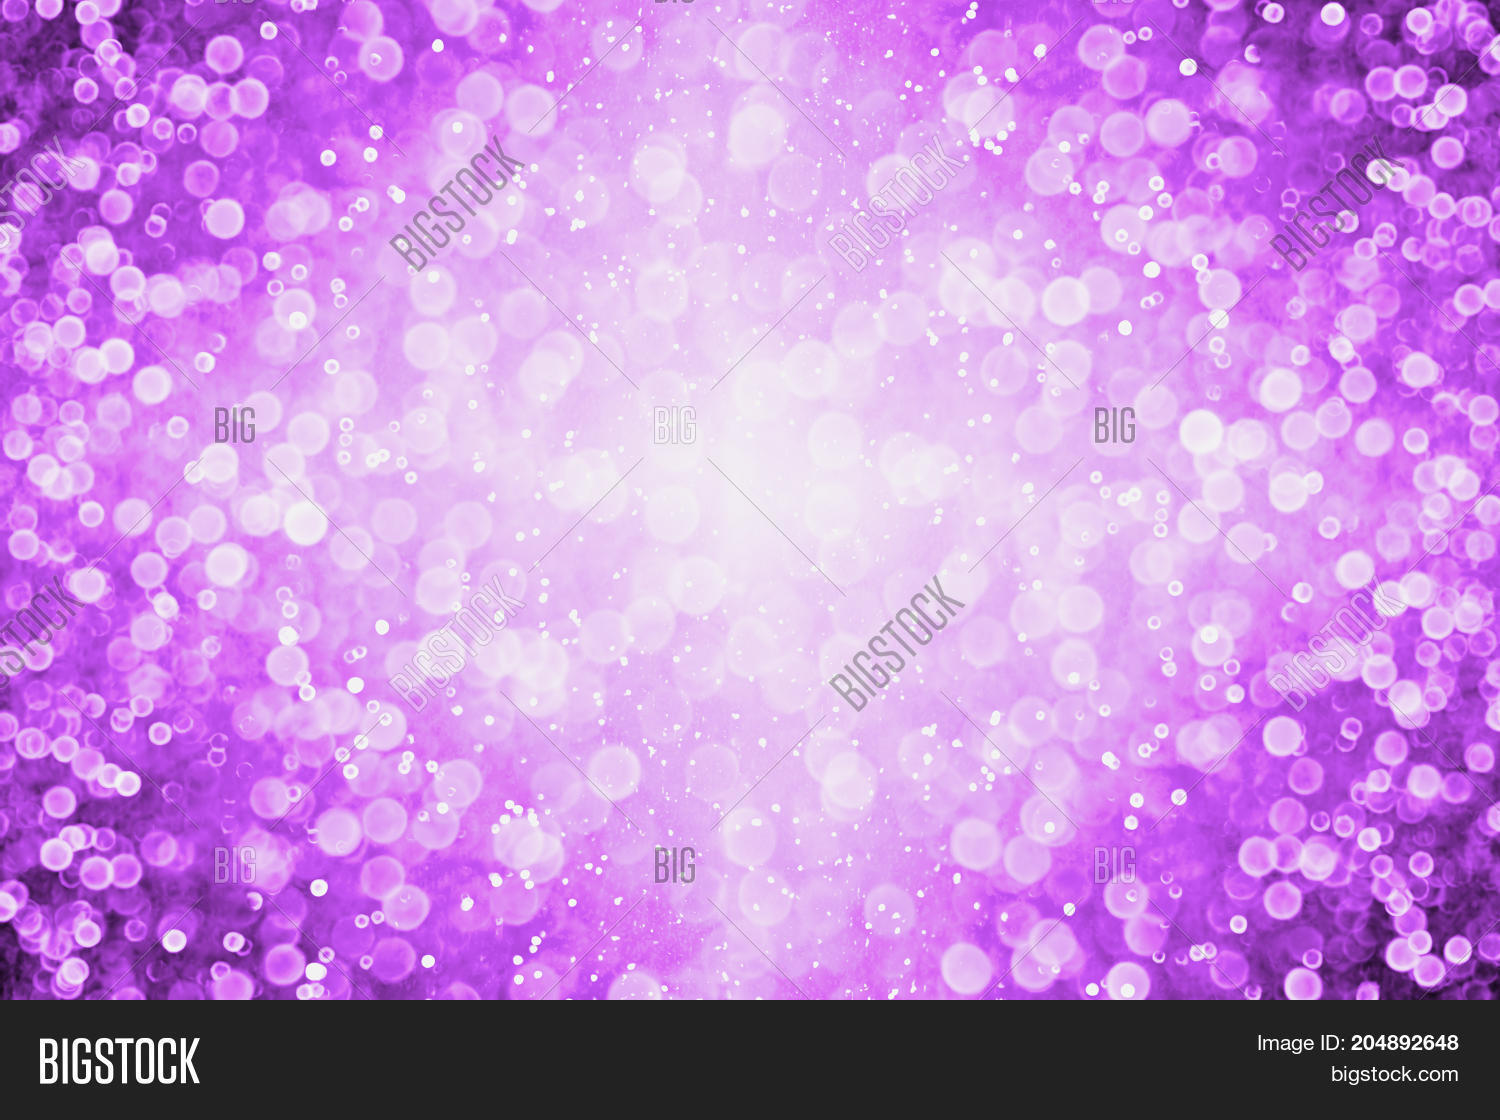 Abstract Purple Image & Photo Free Trial   Bigstock